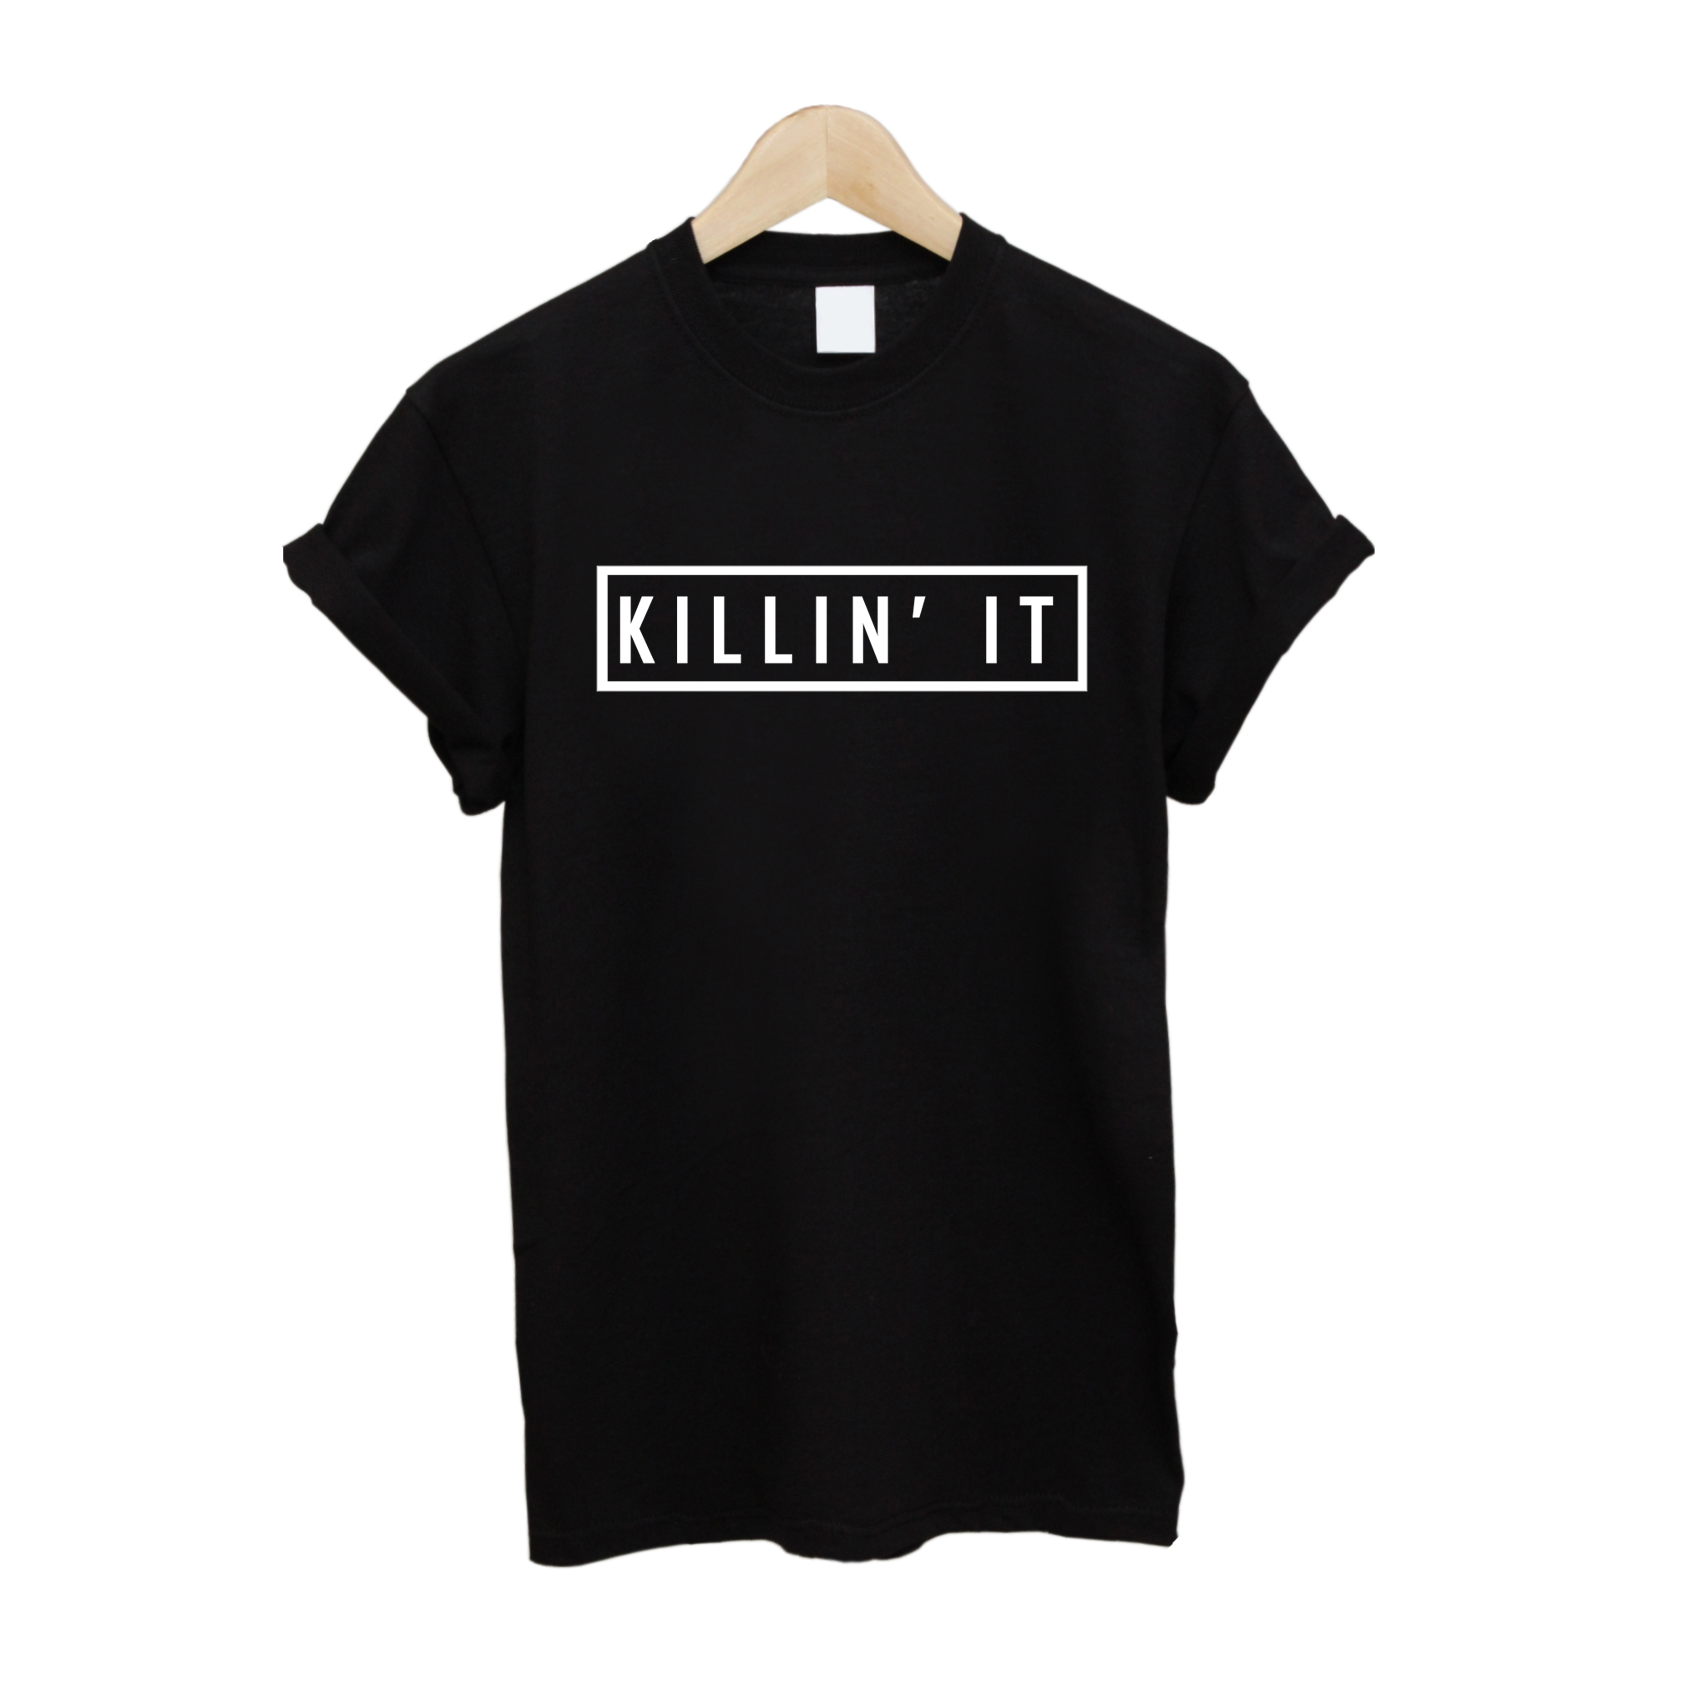 Killin' It T Shirt £10   Free UK Delivery   10% OFF